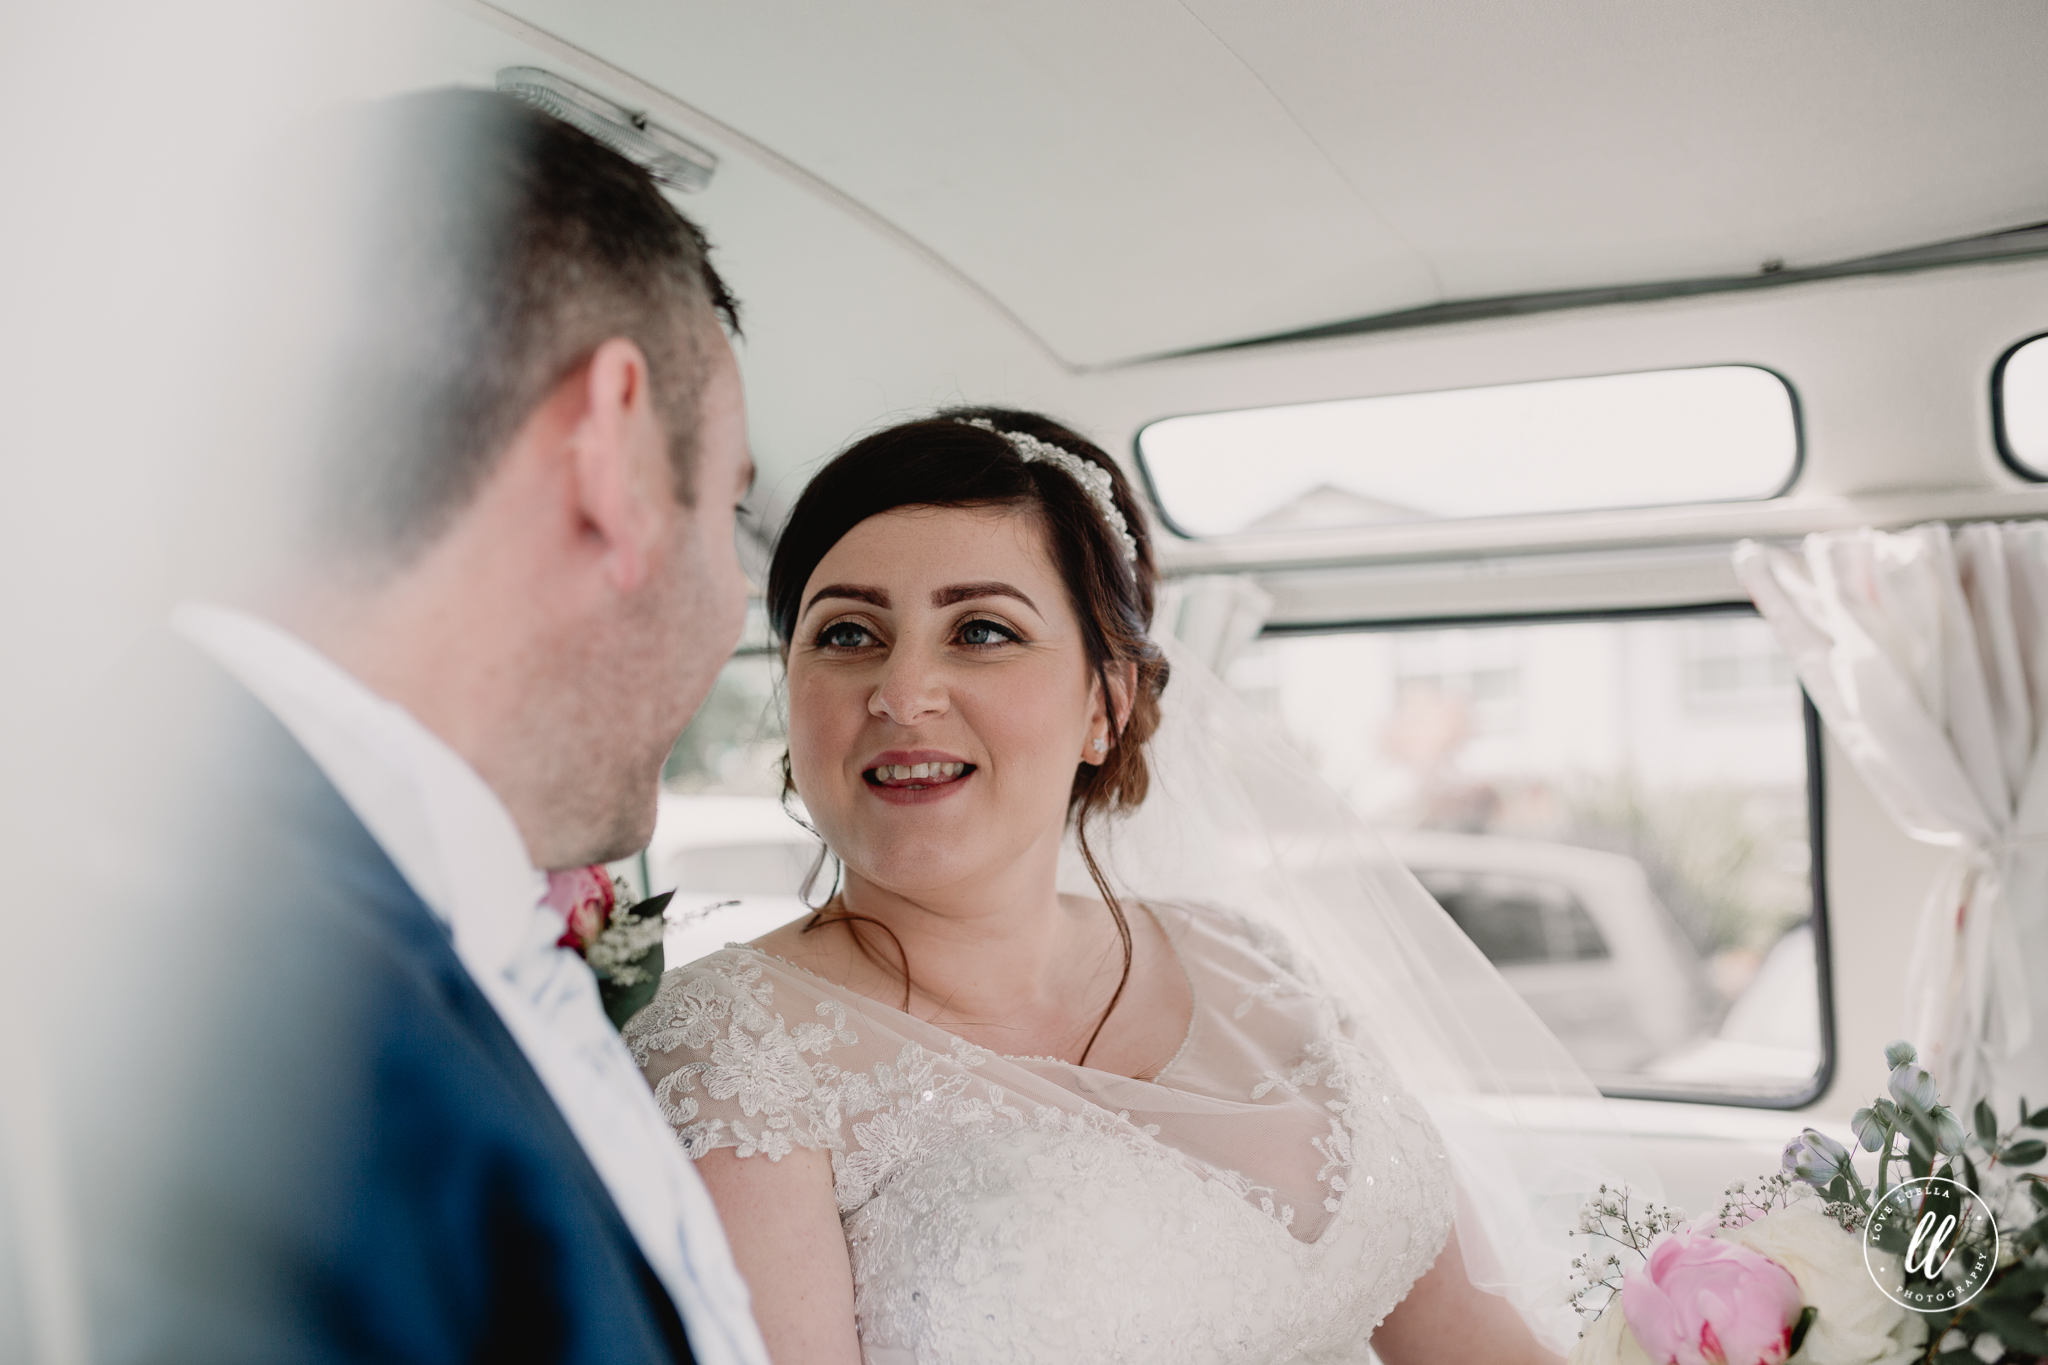 The bride looking at her husband with pride, sitting in their split the difference camper van